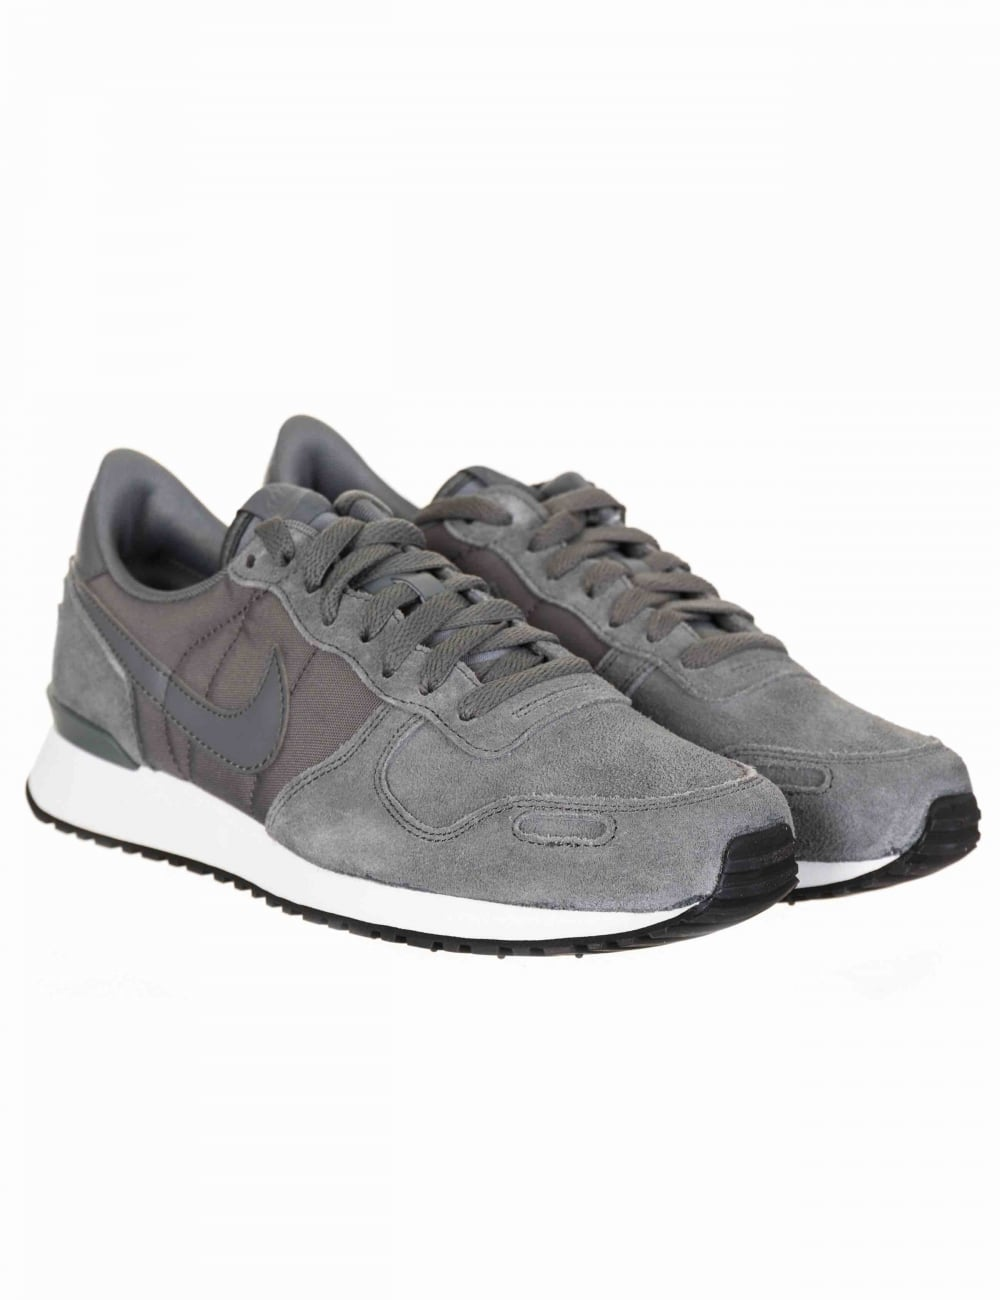 outlet store 80e7e a6ce9 Air Vortex Ltr Shoes - Cool GreyCool Grey